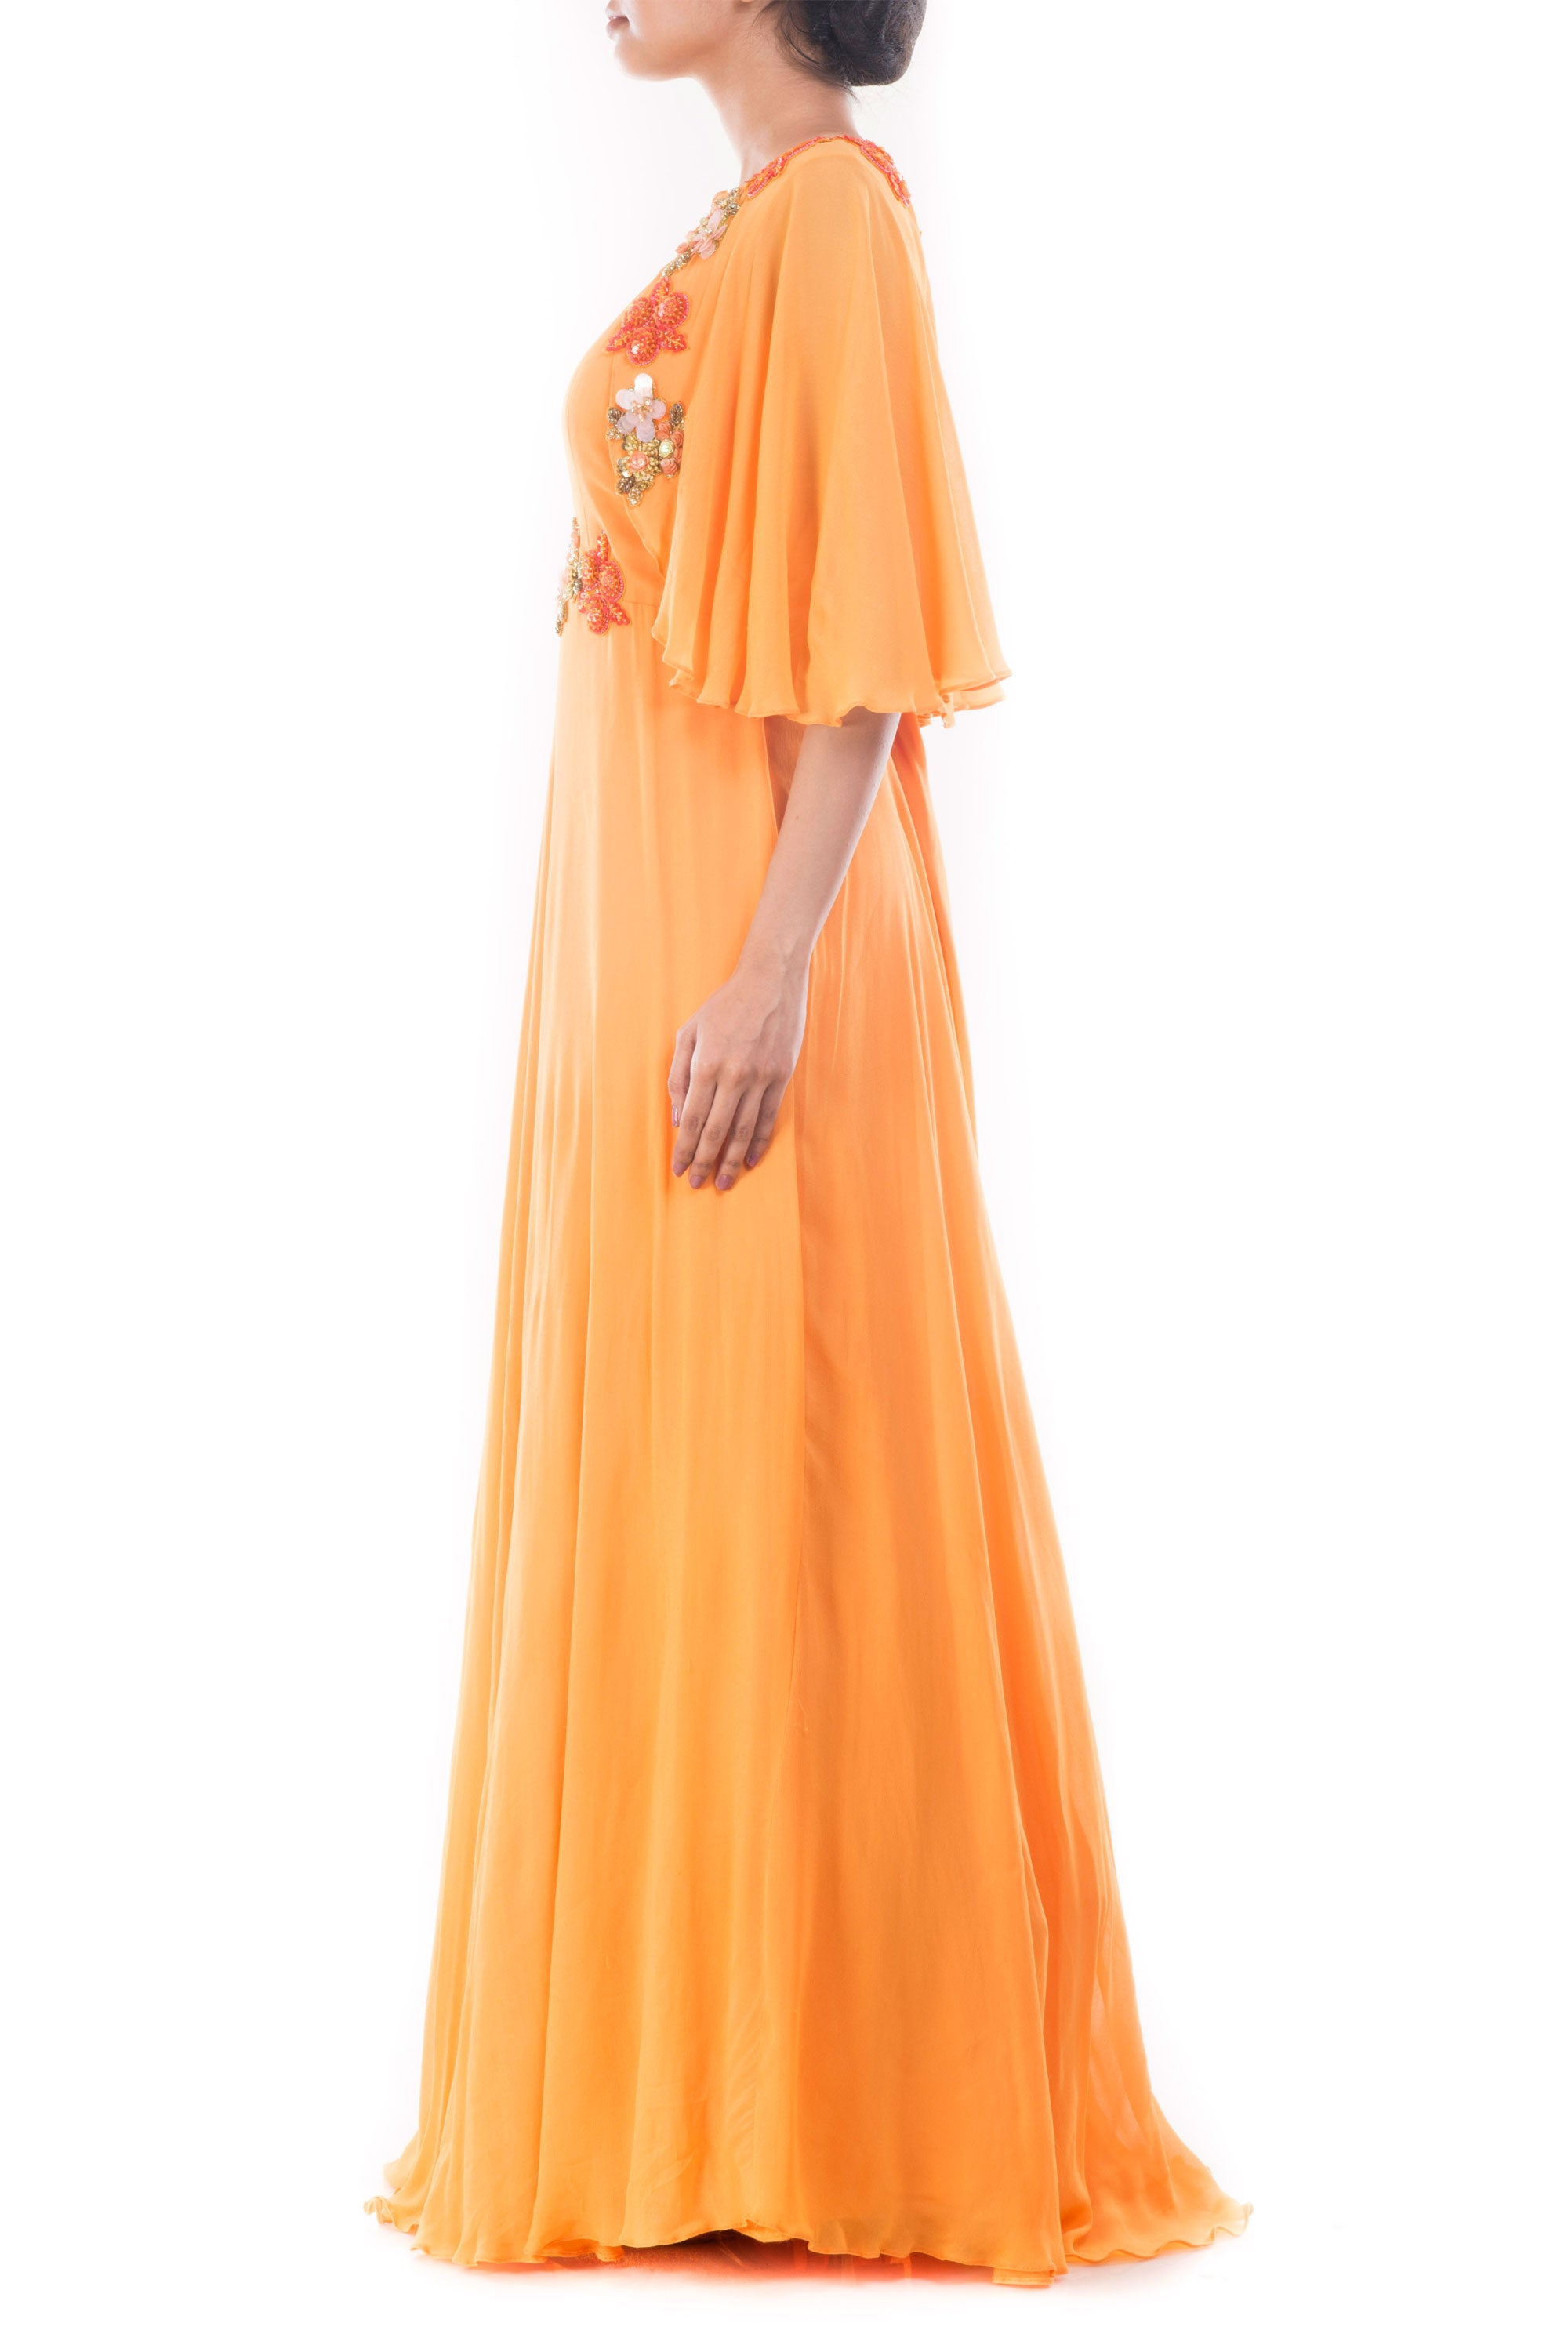 Coral Yellow Flare Jacket Gown Side